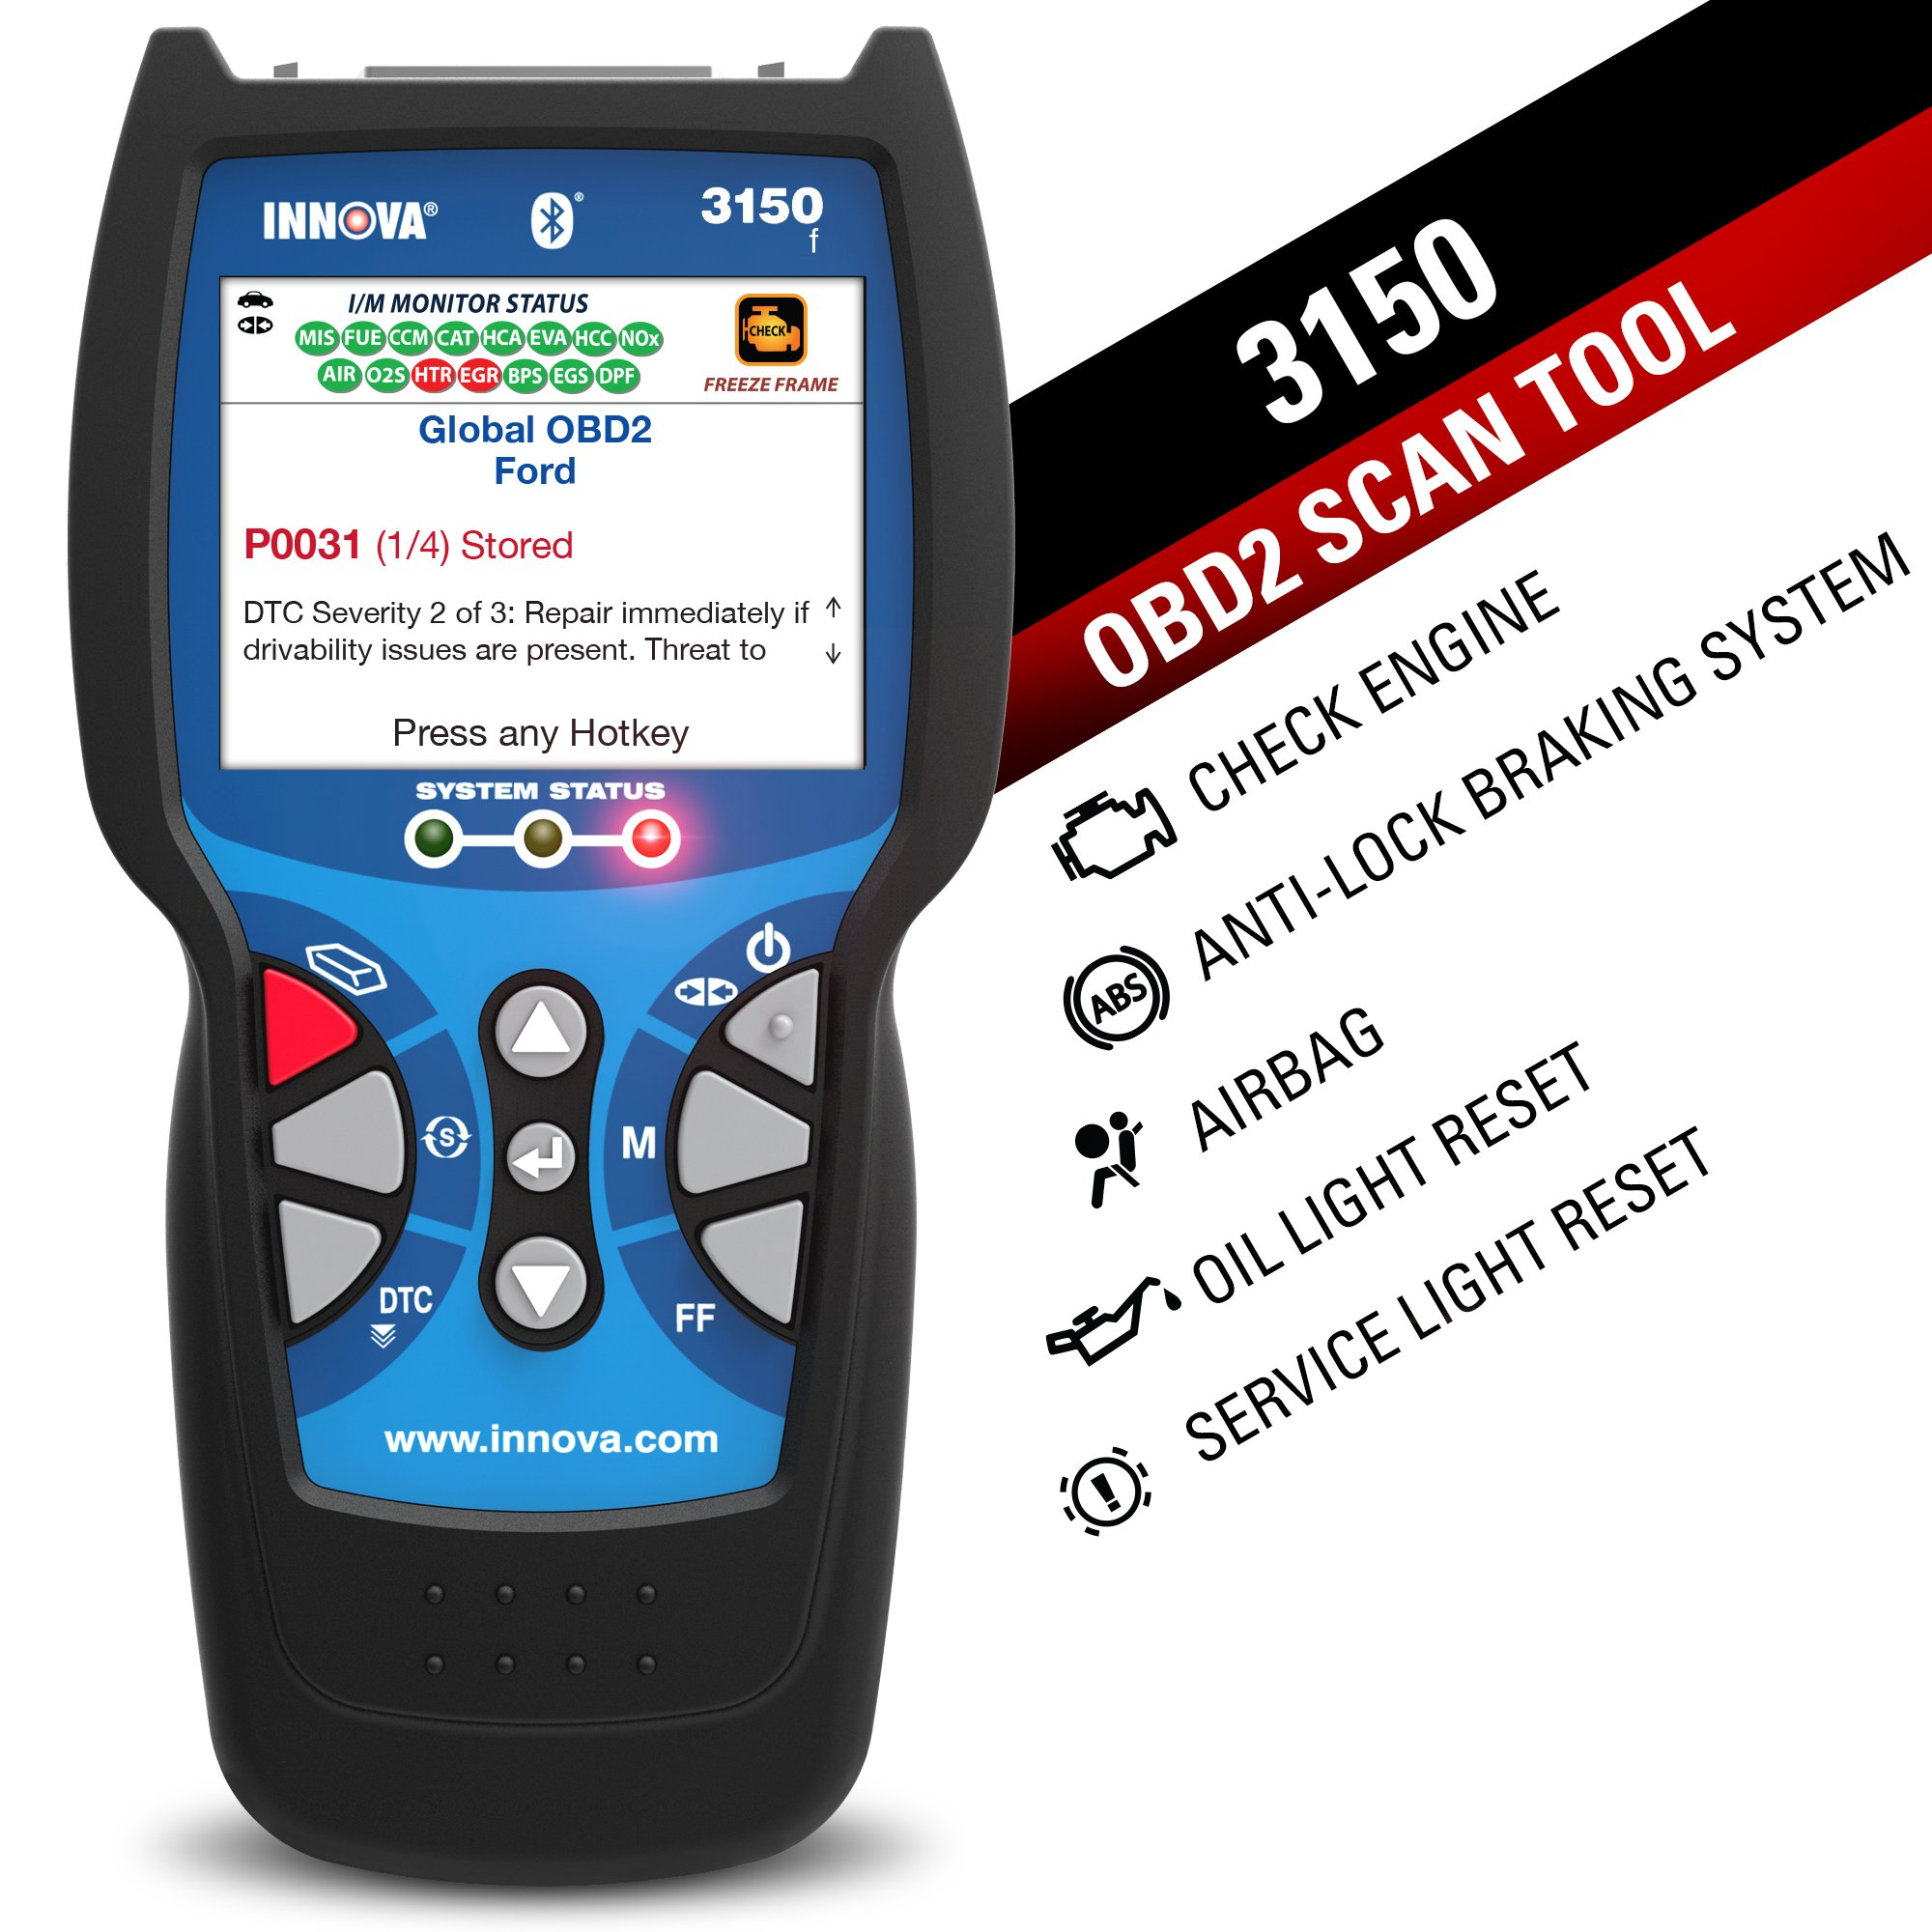 Innova Color Screen 3150f Code Reader/Scan Tool with ABS/SRS and Bluetooth for OBD2 Vehicles by Innova (Image #2)